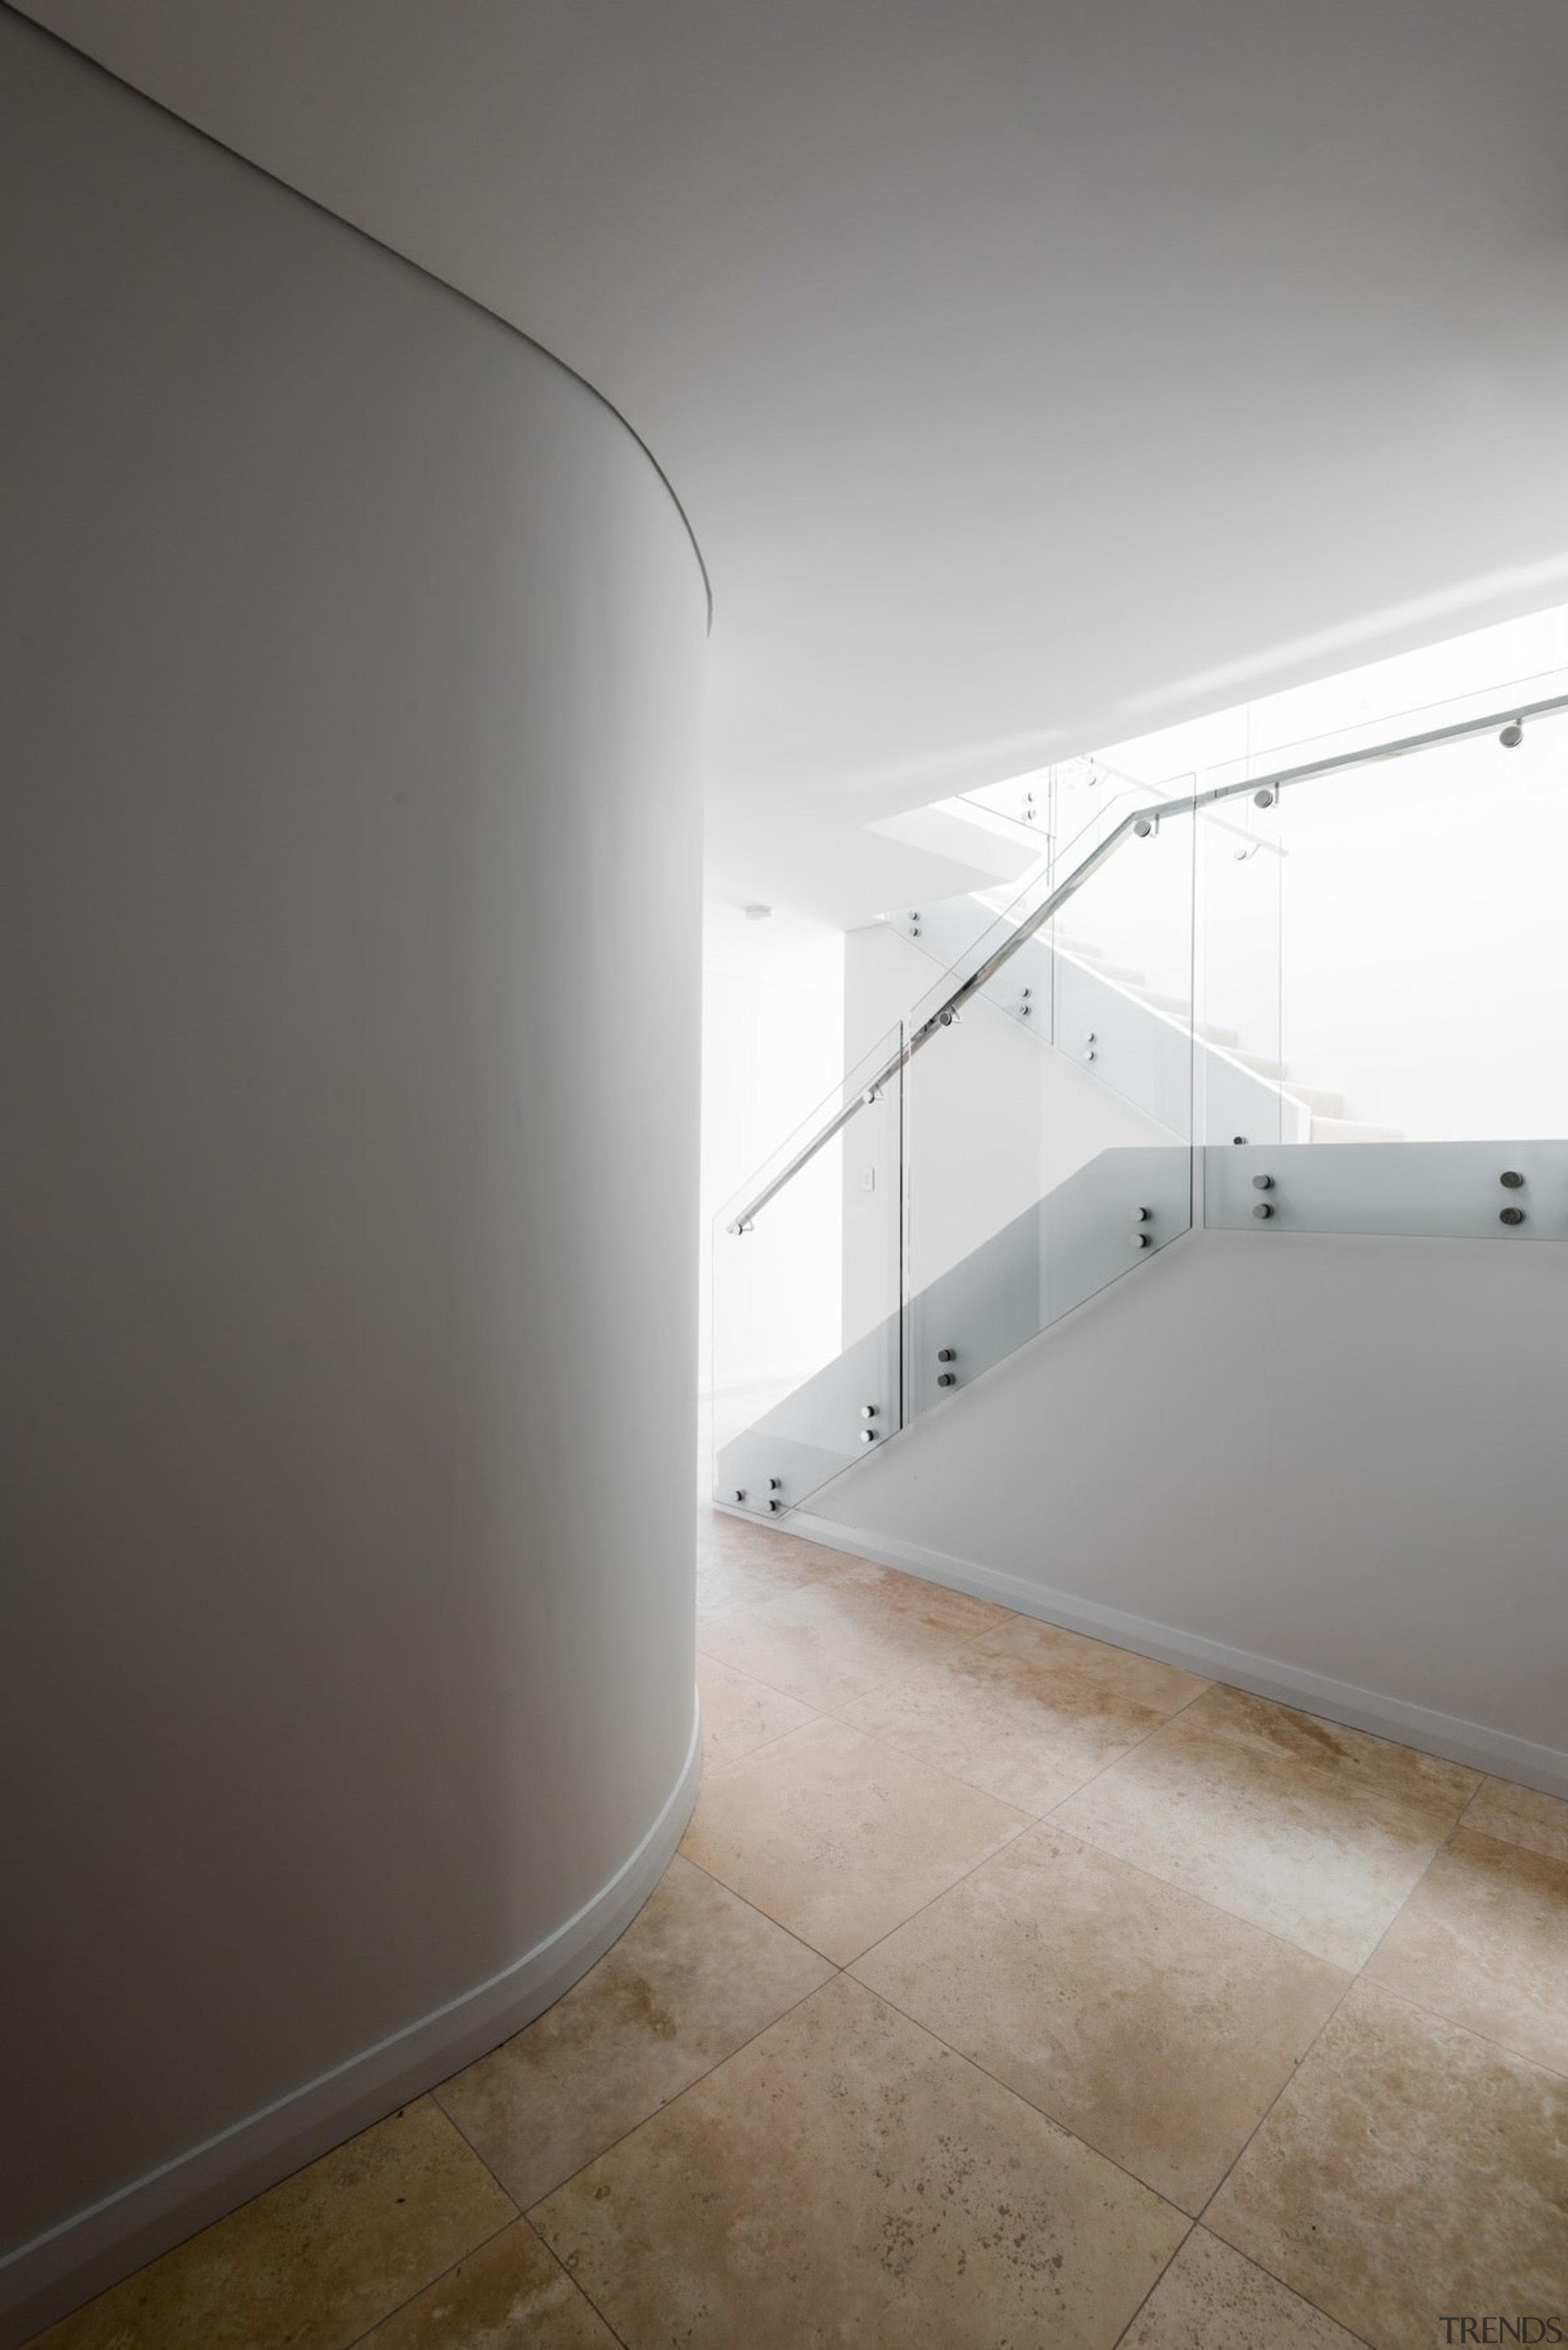 There's no shortage of light here - There's angle, apartment, architecture, ceiling, daylighting, floor, glass, house, interior design, light, product design, property, wall, gray, white